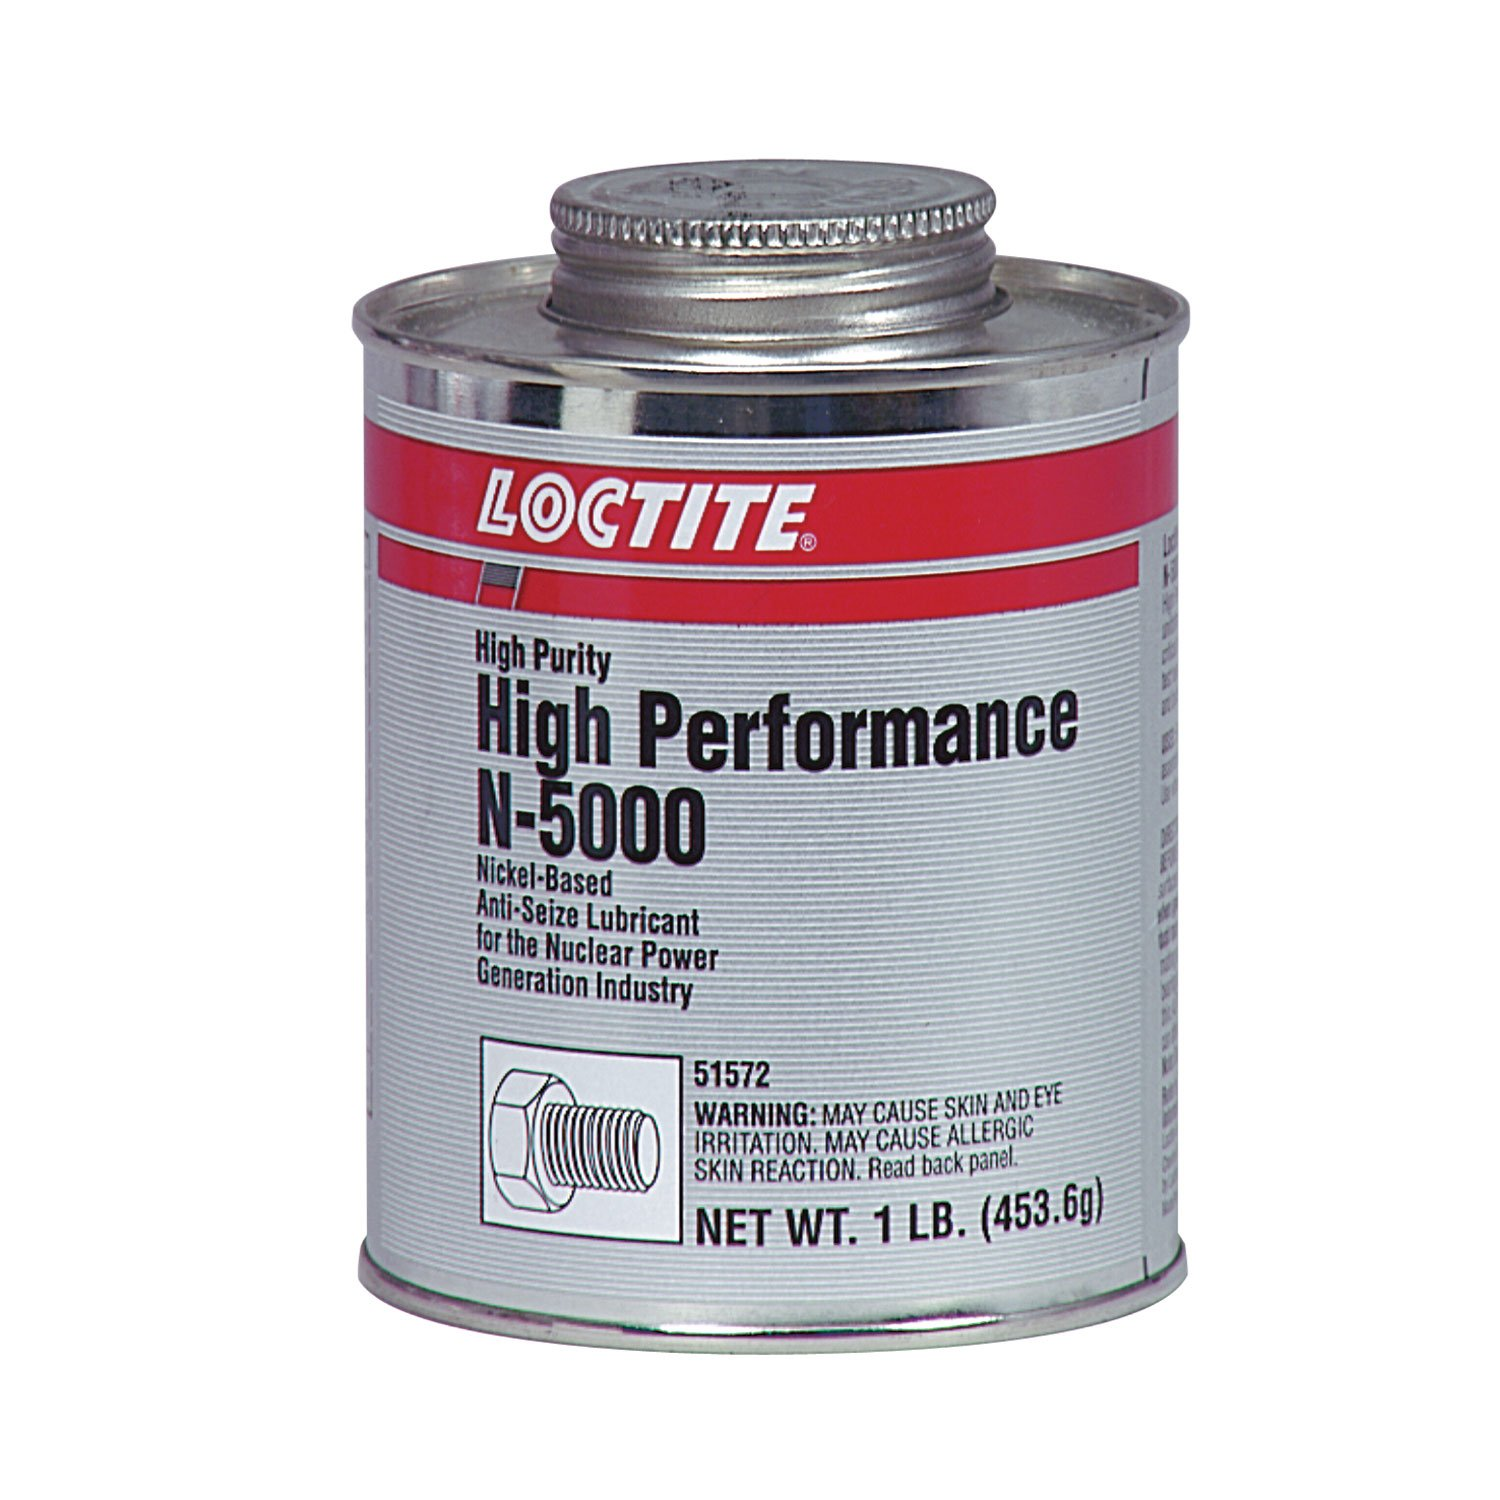 Loctite 51572 Silver N-5000 High-Performance High-Purity Anti-Seize Lubricant, -20 Degree F Lower Temperature Rating to 2400 Degree F Upper Temperature Rating, 1 lb. Brush Top Can